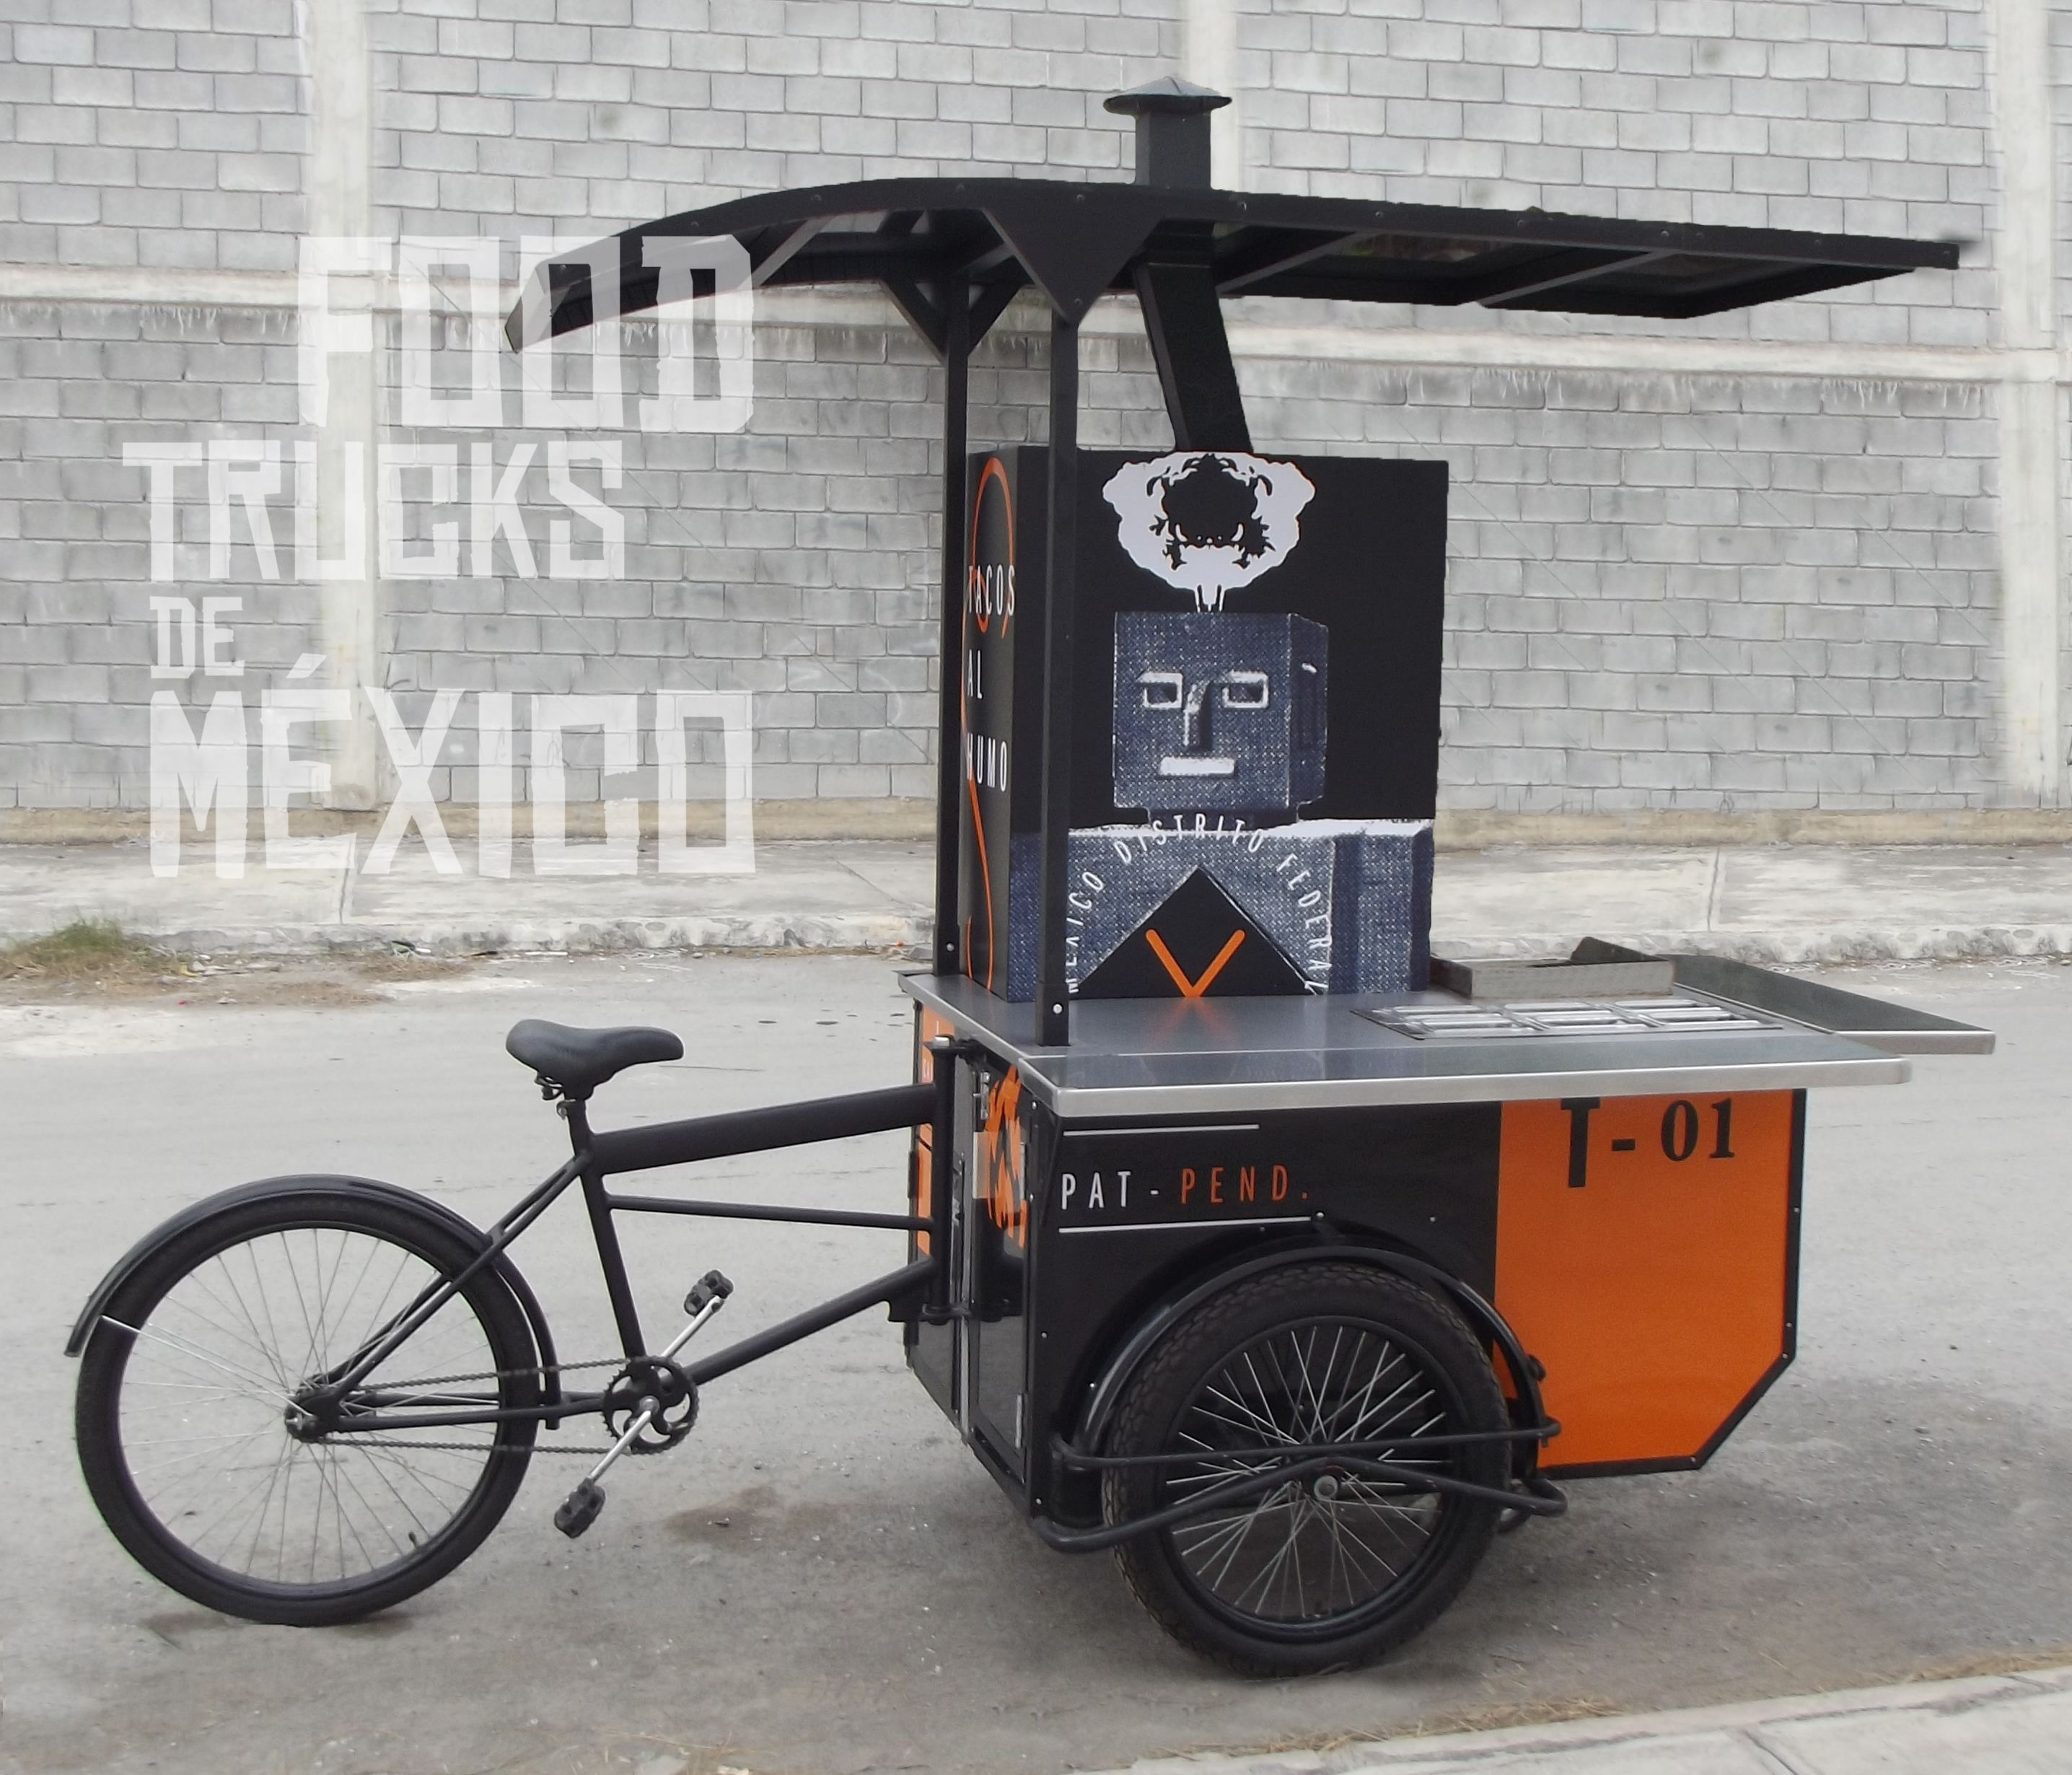 Bikes, tacos and food truck on pinterest